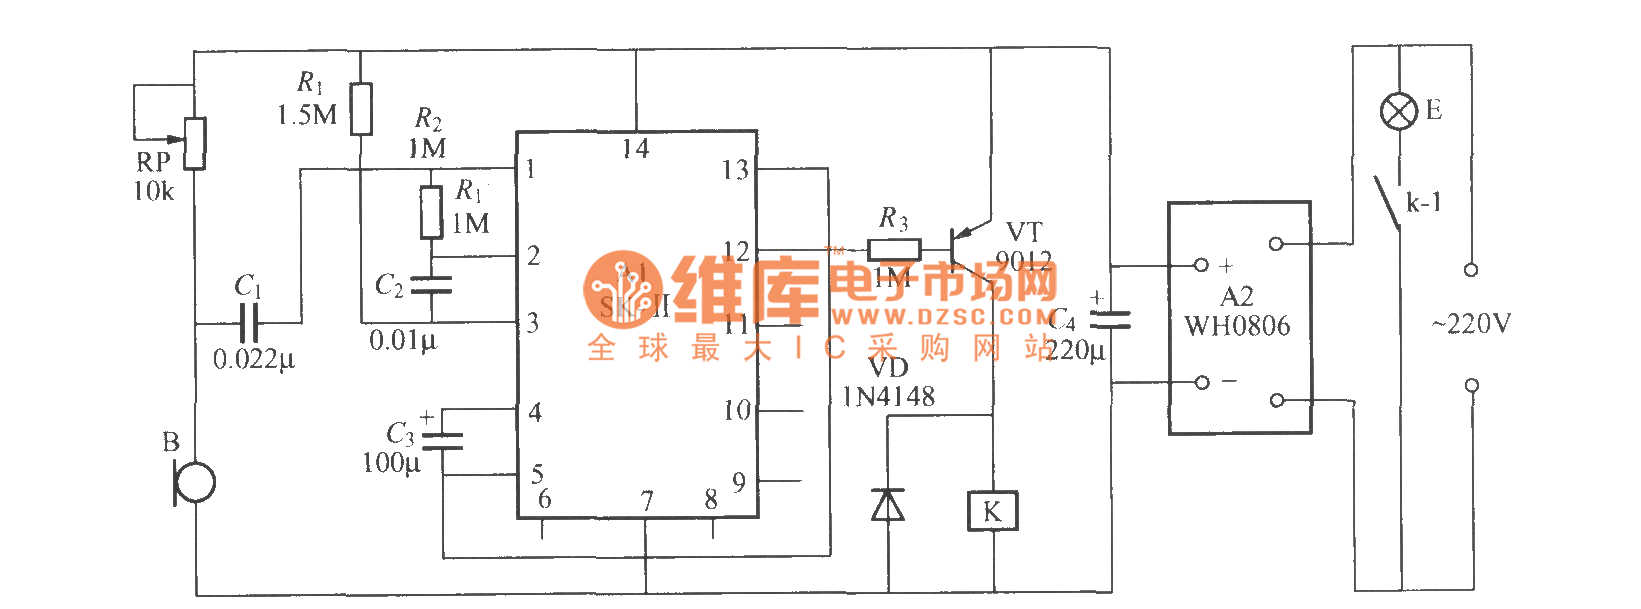 Voice Activated Delayed Light Switch Circuit 2 Basic Index 209 Control Diagram Seekiccom